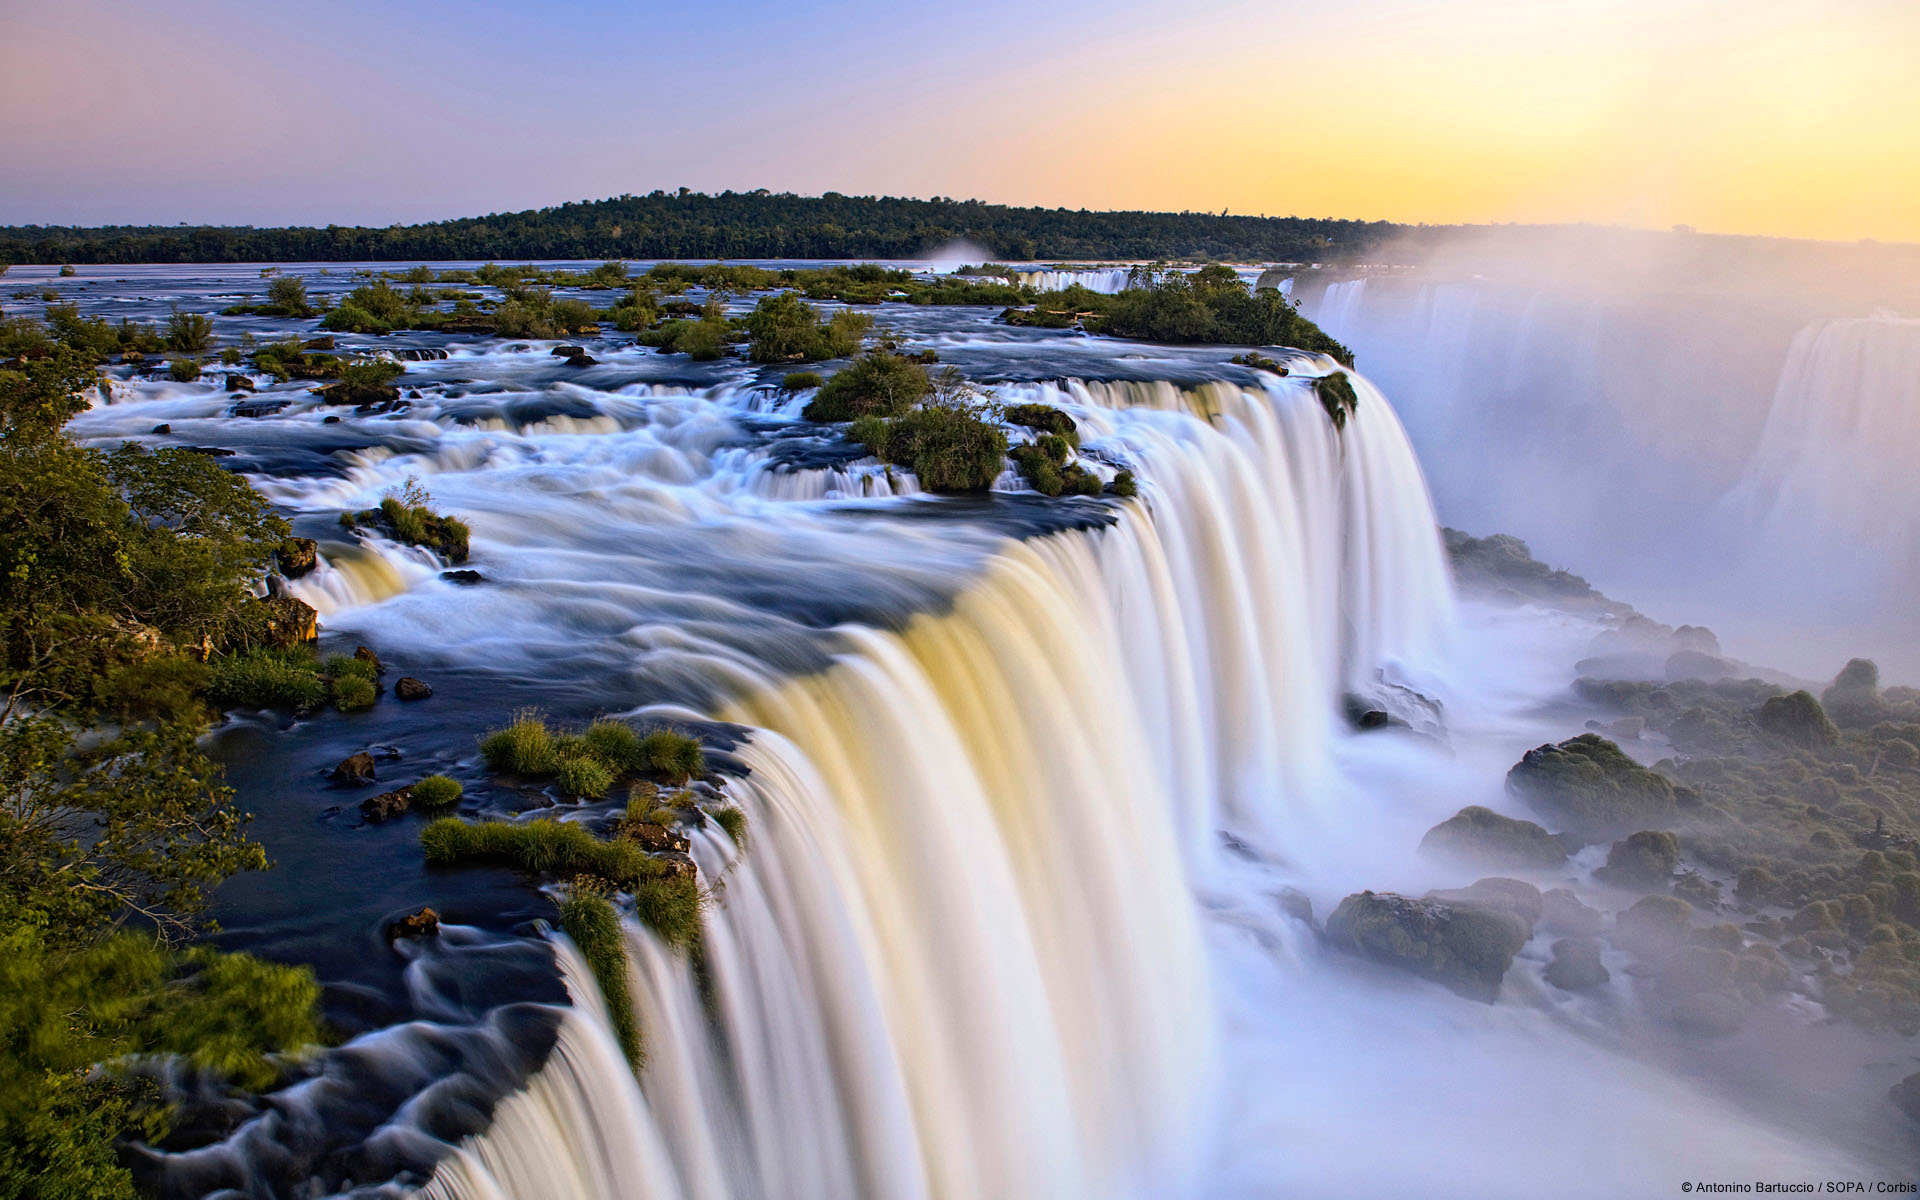 Argentina Great Waterfalls 1742.57 Kb